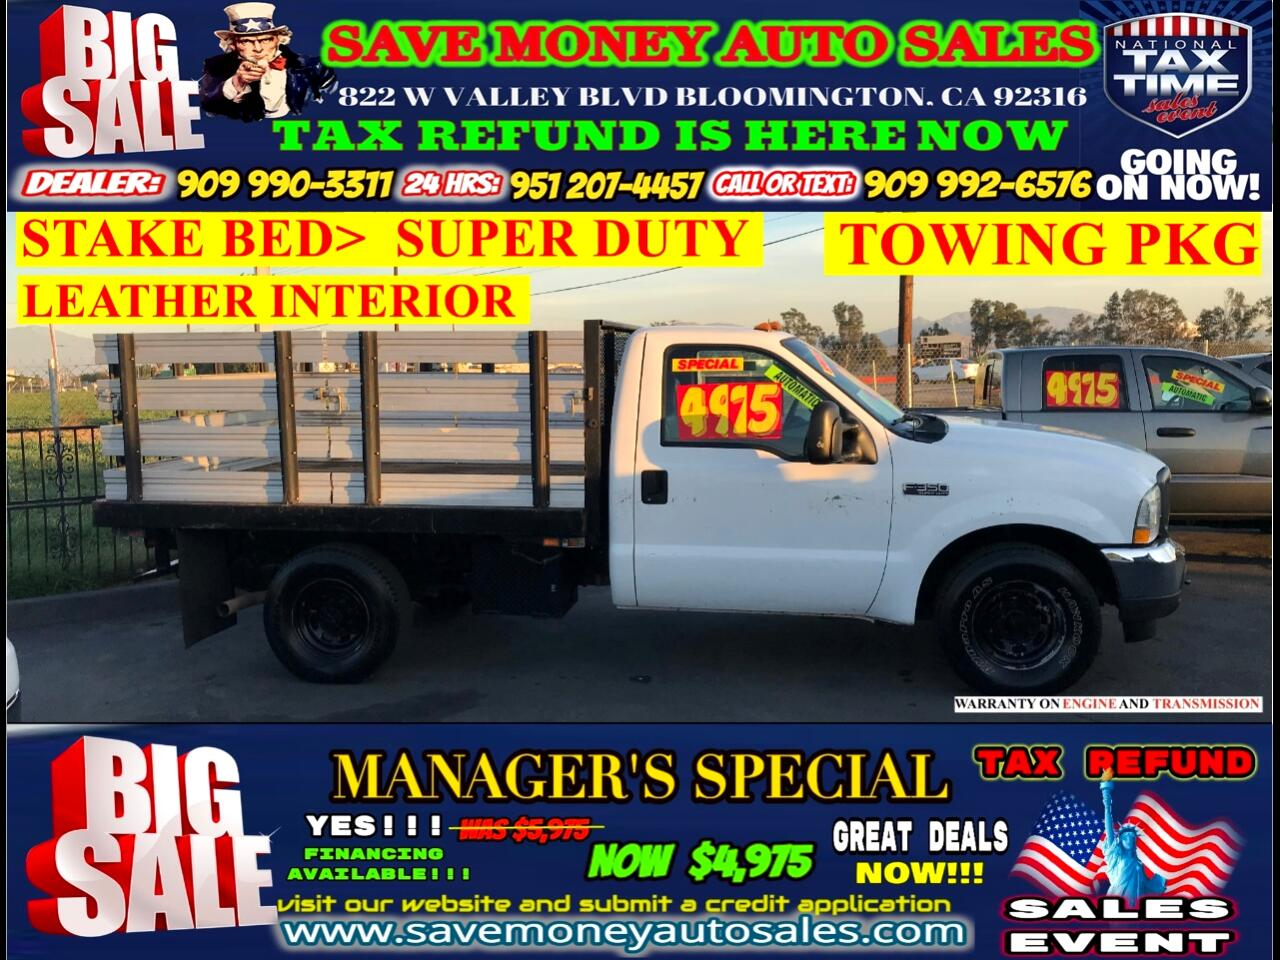 2004 Ford F-350 SD XLT SUPER DUTY> STAKE BED> FULLY LOADED> LEATHER S